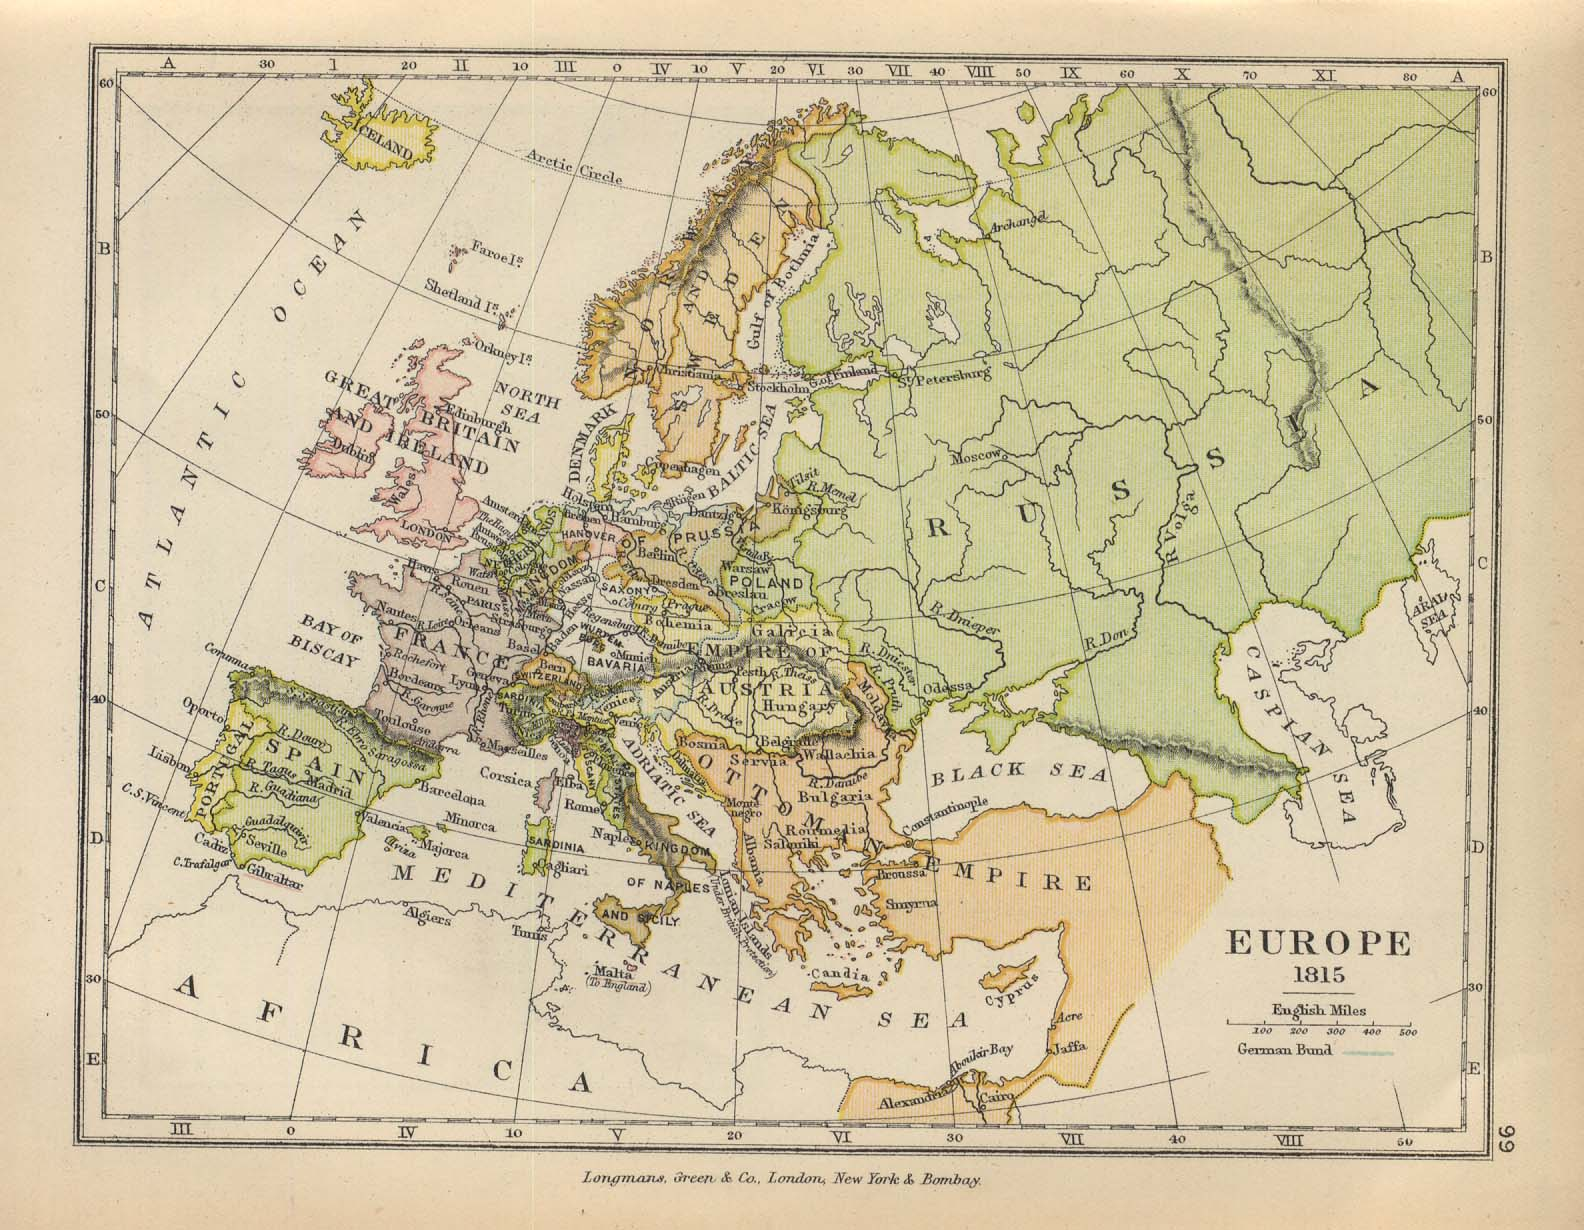 WHKMLA   Historical Atlas  Europe 1815 2002 External Online Map   Europe 1815 1905